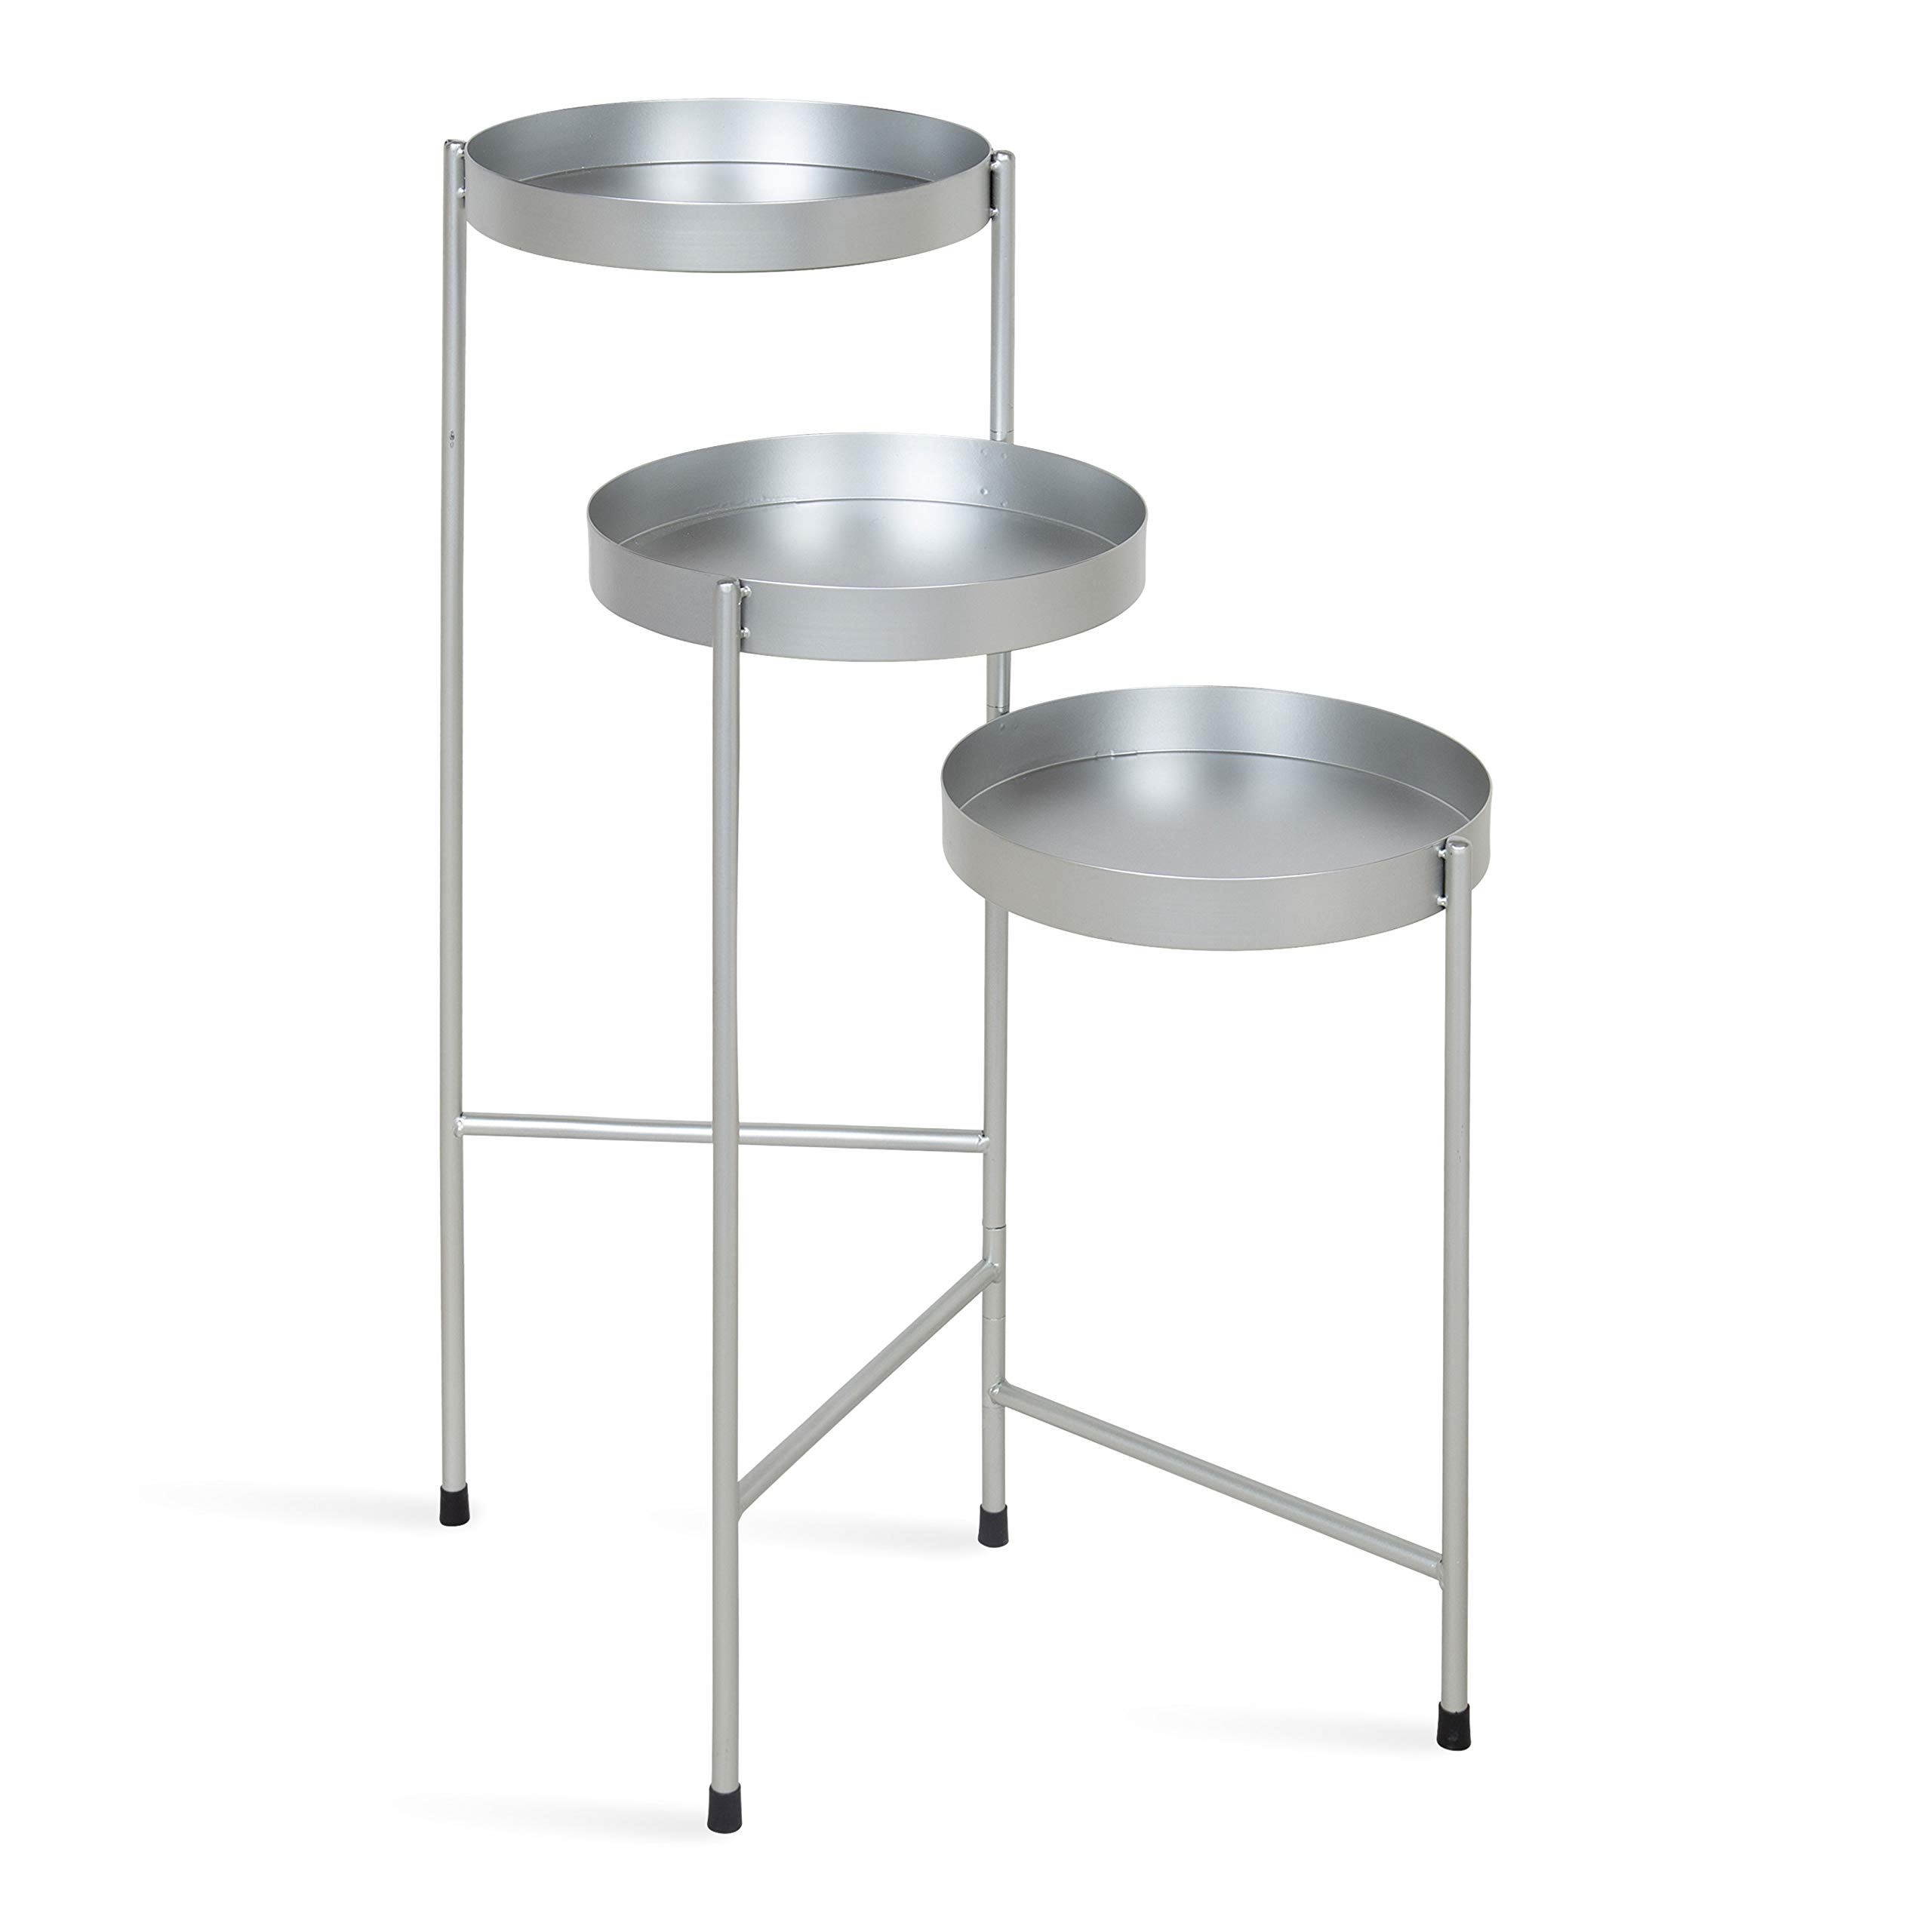 Kate and Laurel Finn Tri-Level Metal Plant Stand, Silver